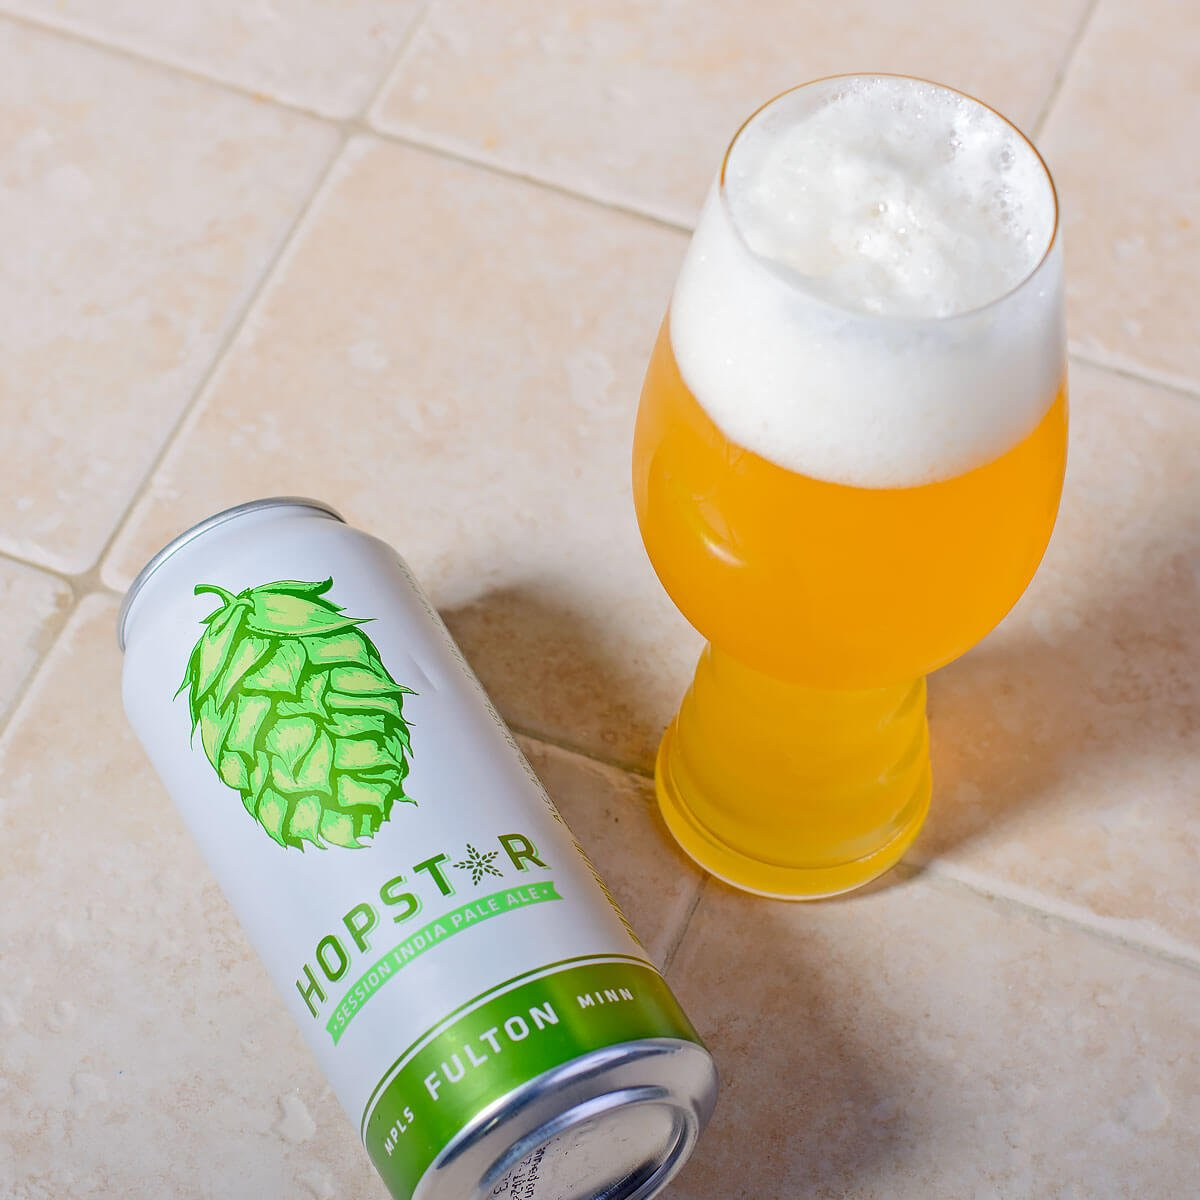 Hopstar, a Session IPA by Fulton Beer